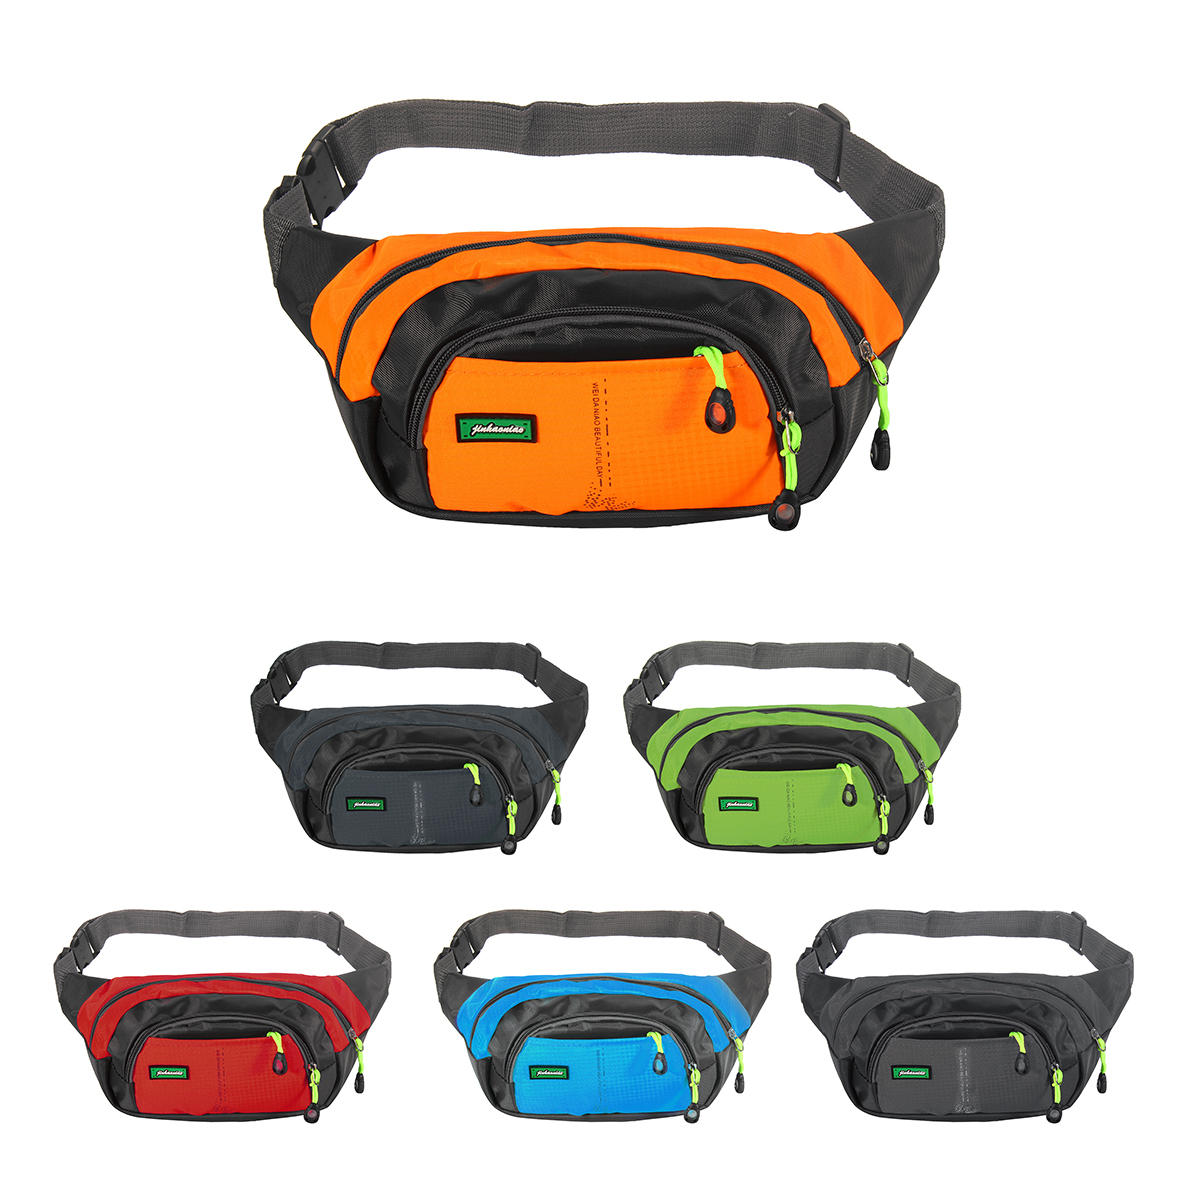 26052457396d [₹783.34] Waterproof Sport Waist Bag Phone Bag Crossbody Bag For Hiking  Jogging Running Mobile Phones Accessories from Mobile Phones & Accessories  on ...